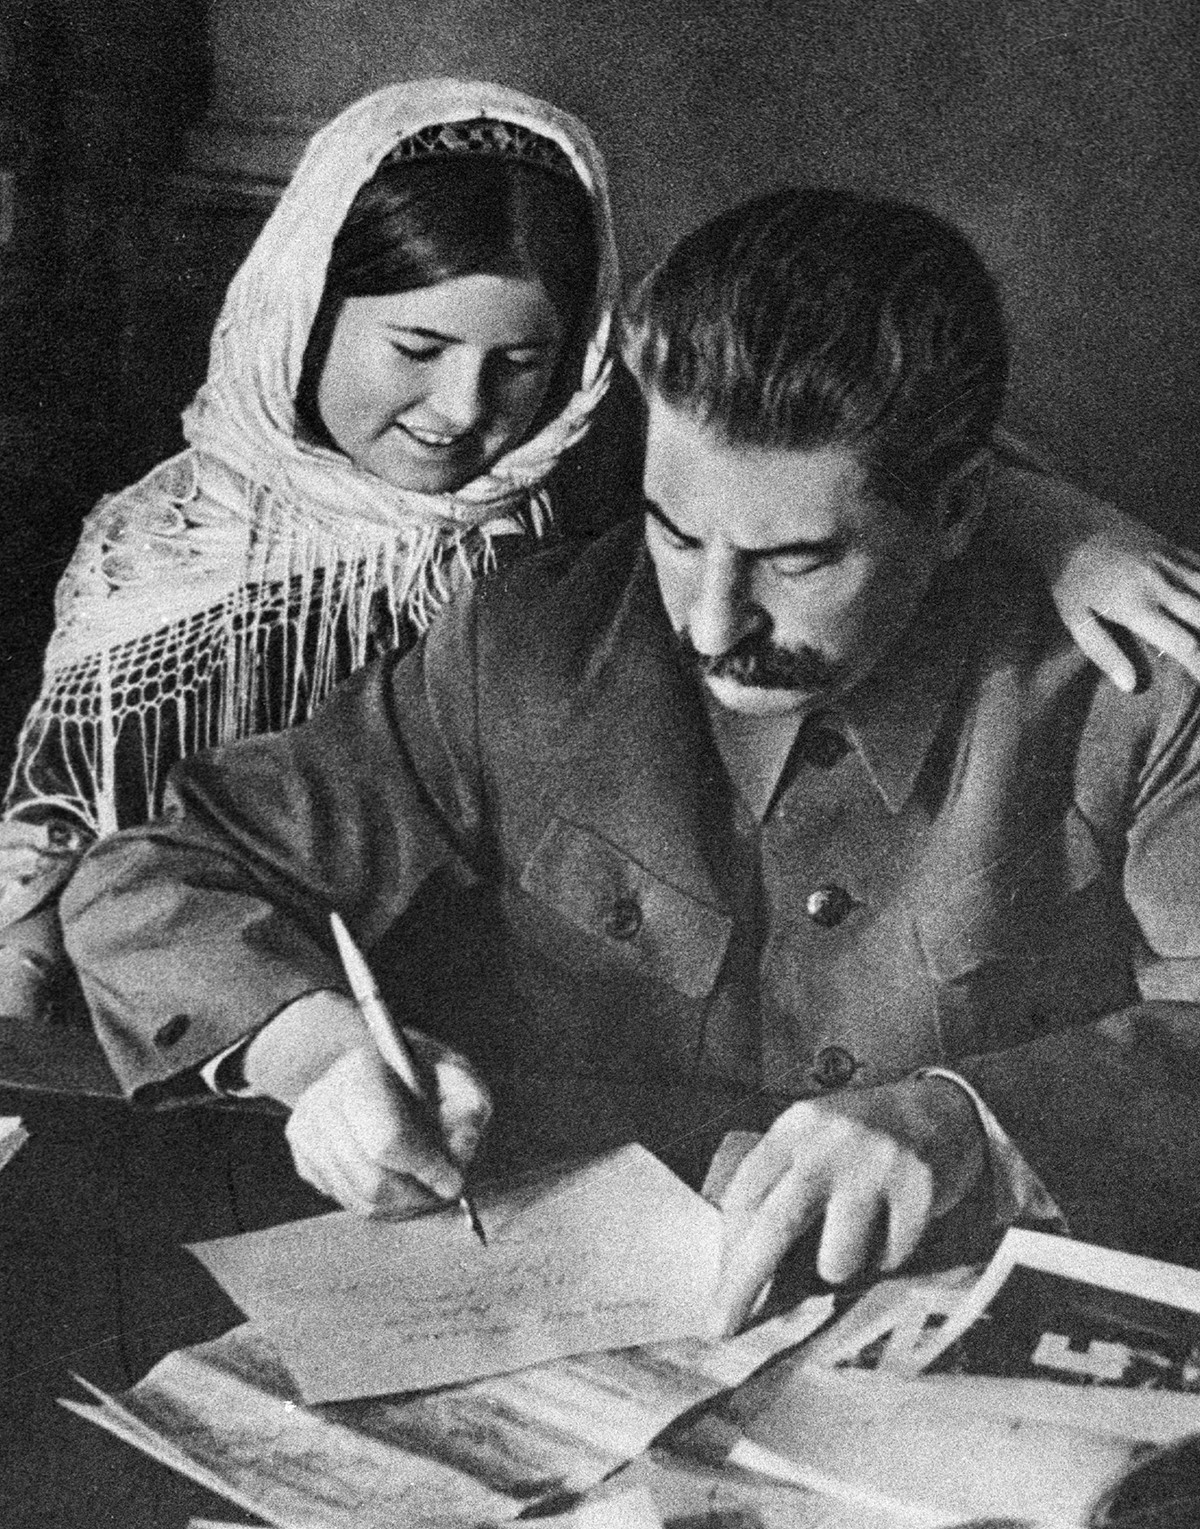 Joseph Stalin and a Tadzhik girl.